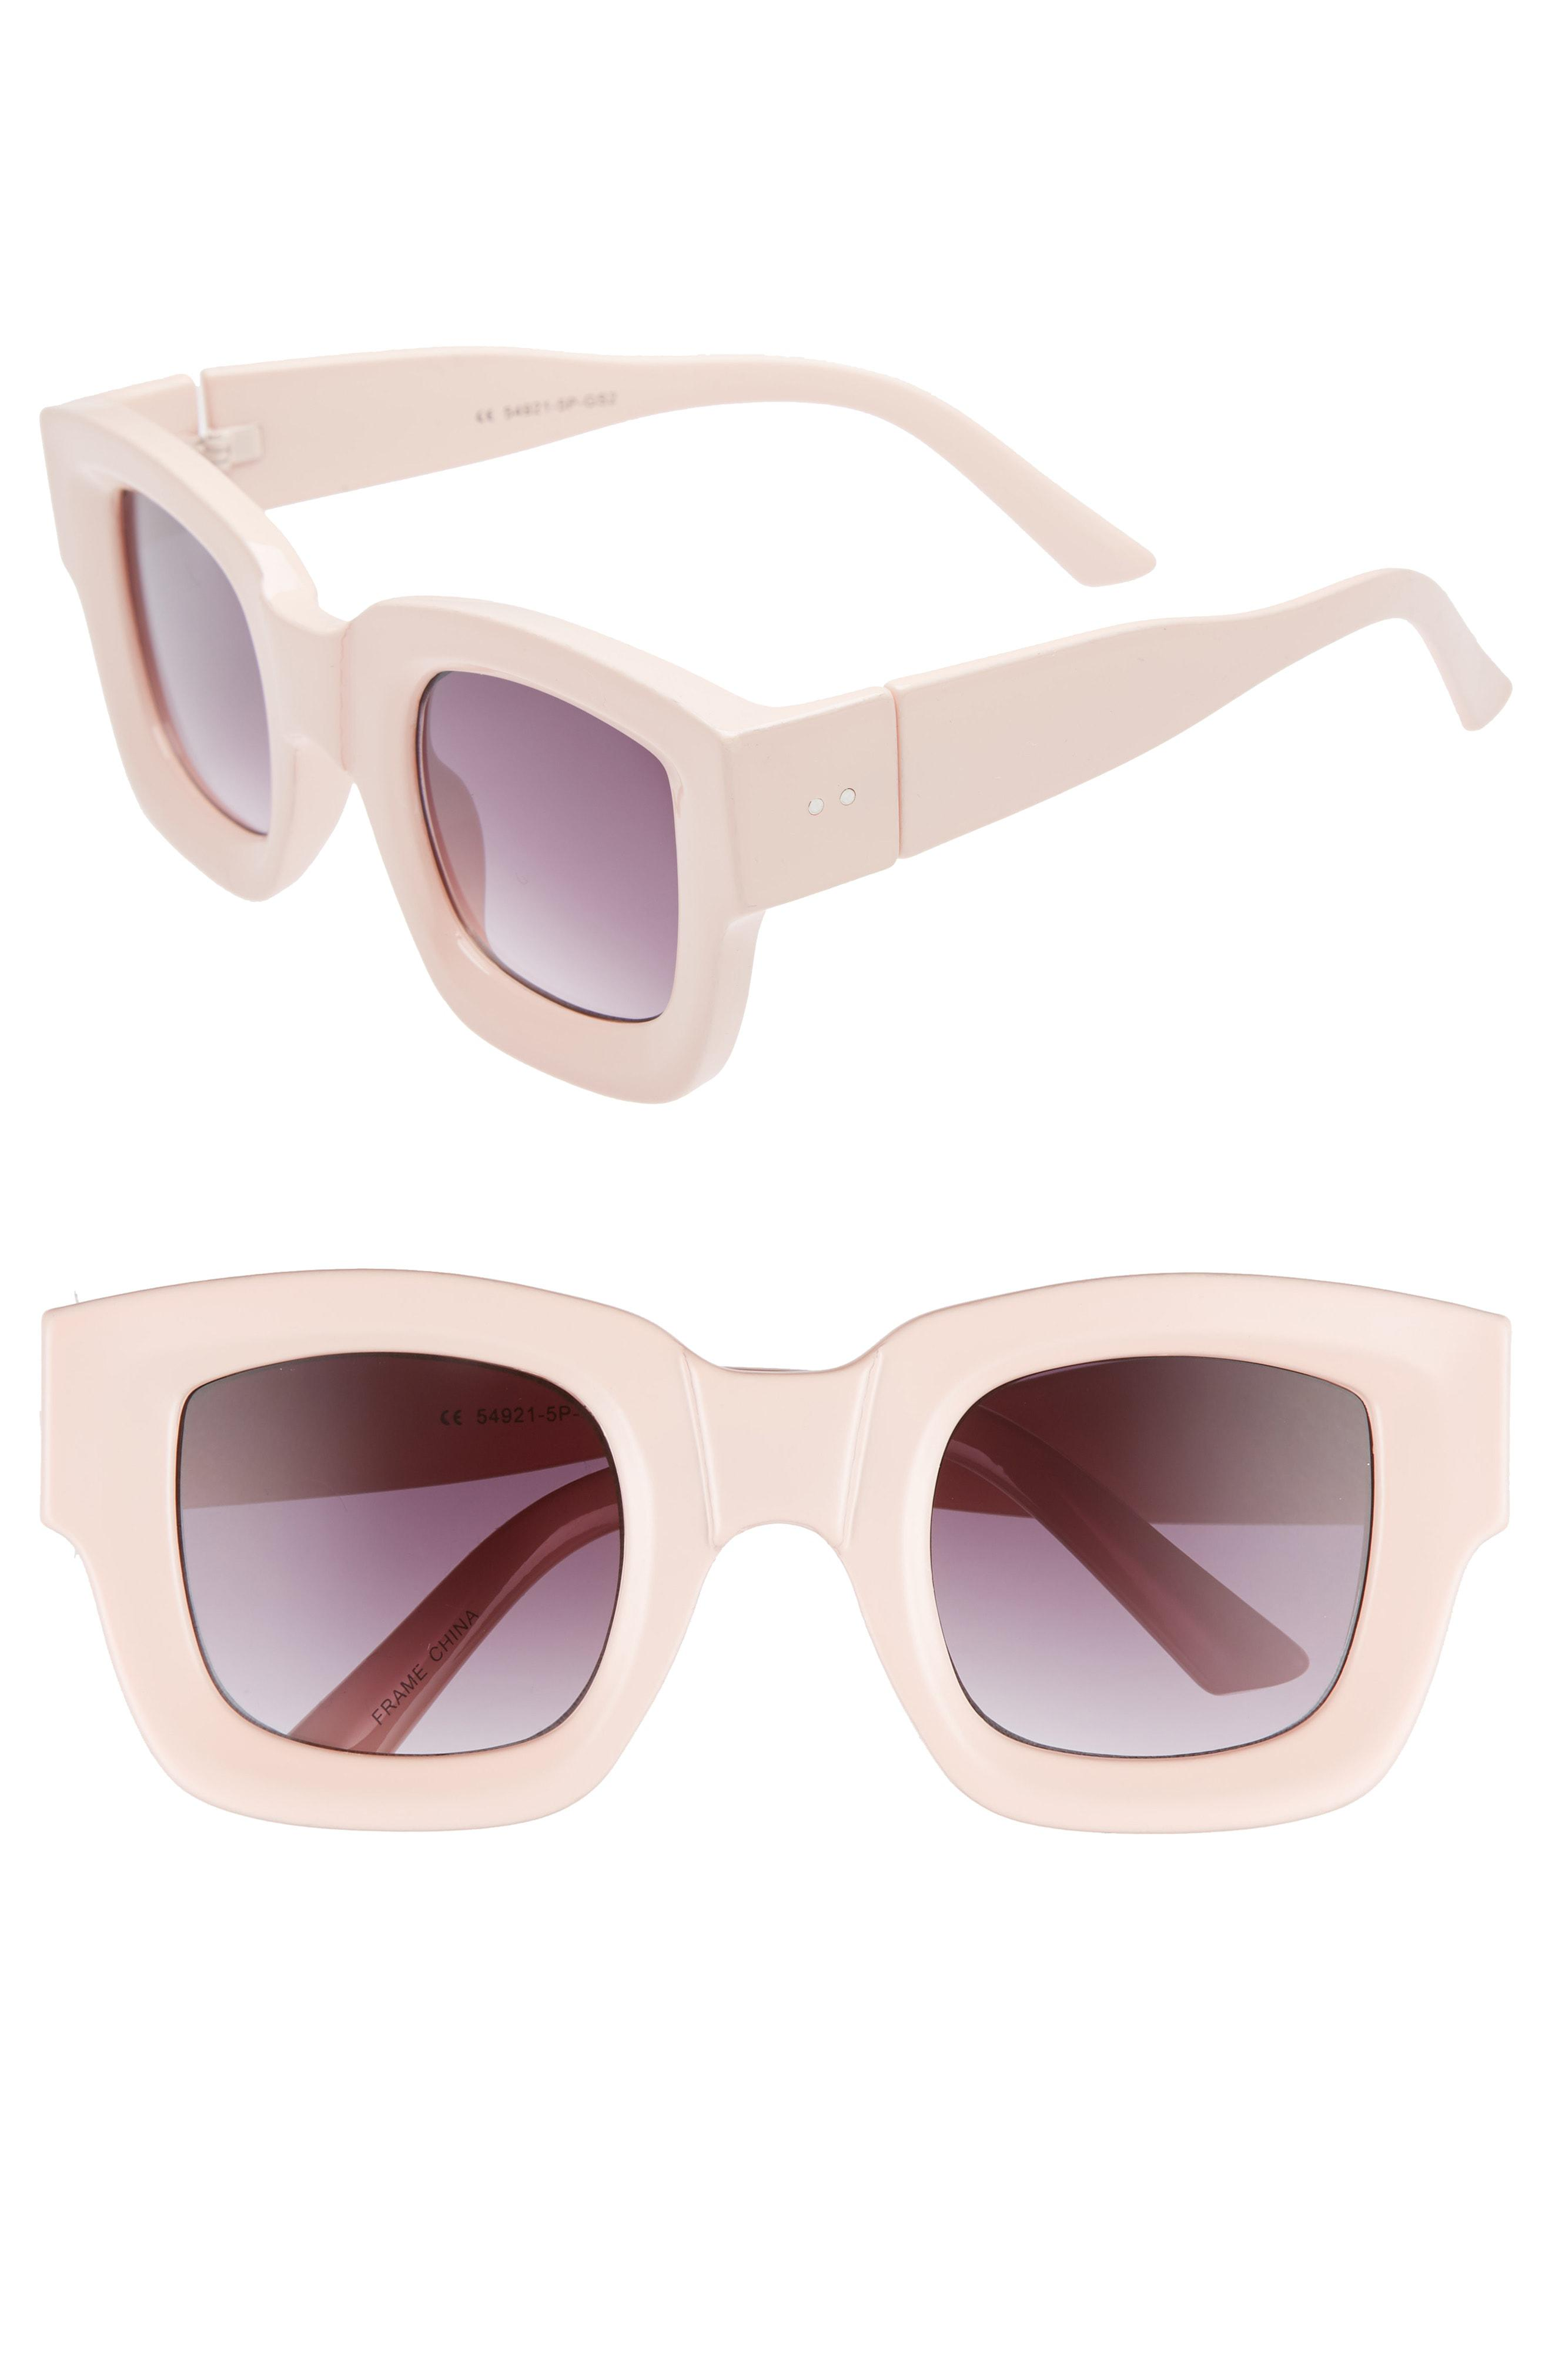 483865b203 Lyst - Glance Eyewear 45mm Square Sunglasses - Pale Pink in Pink